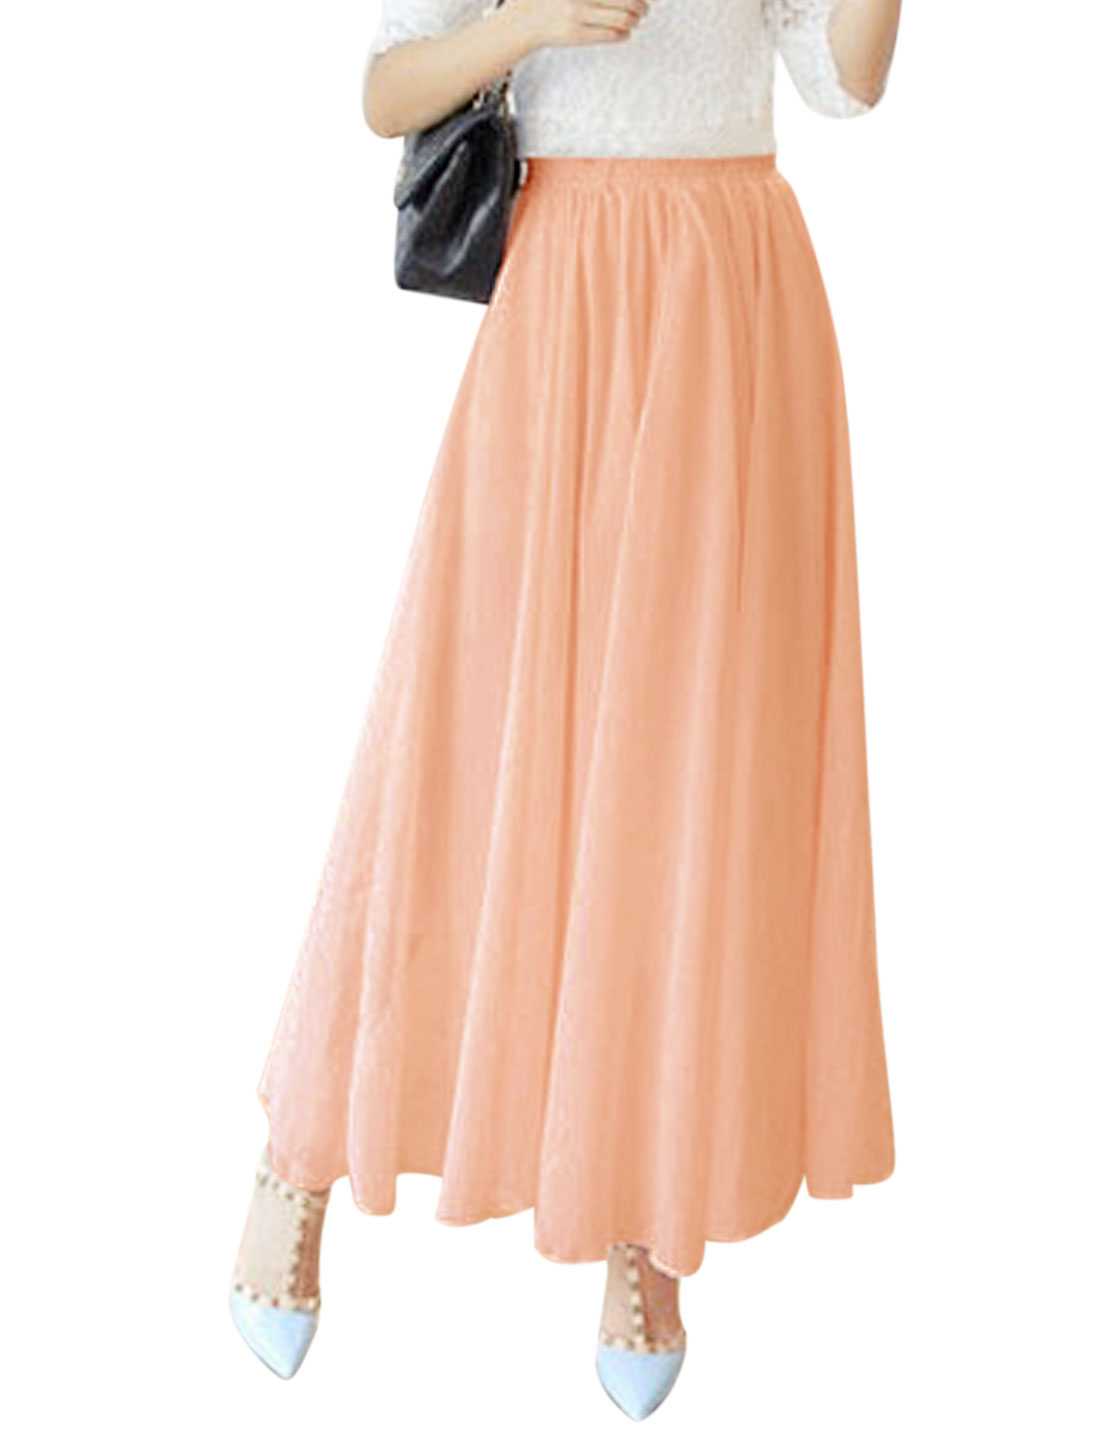 Women Mid Rise Elastic Waist Fully Lined Casual Chiffon Skirt Pale Pink S